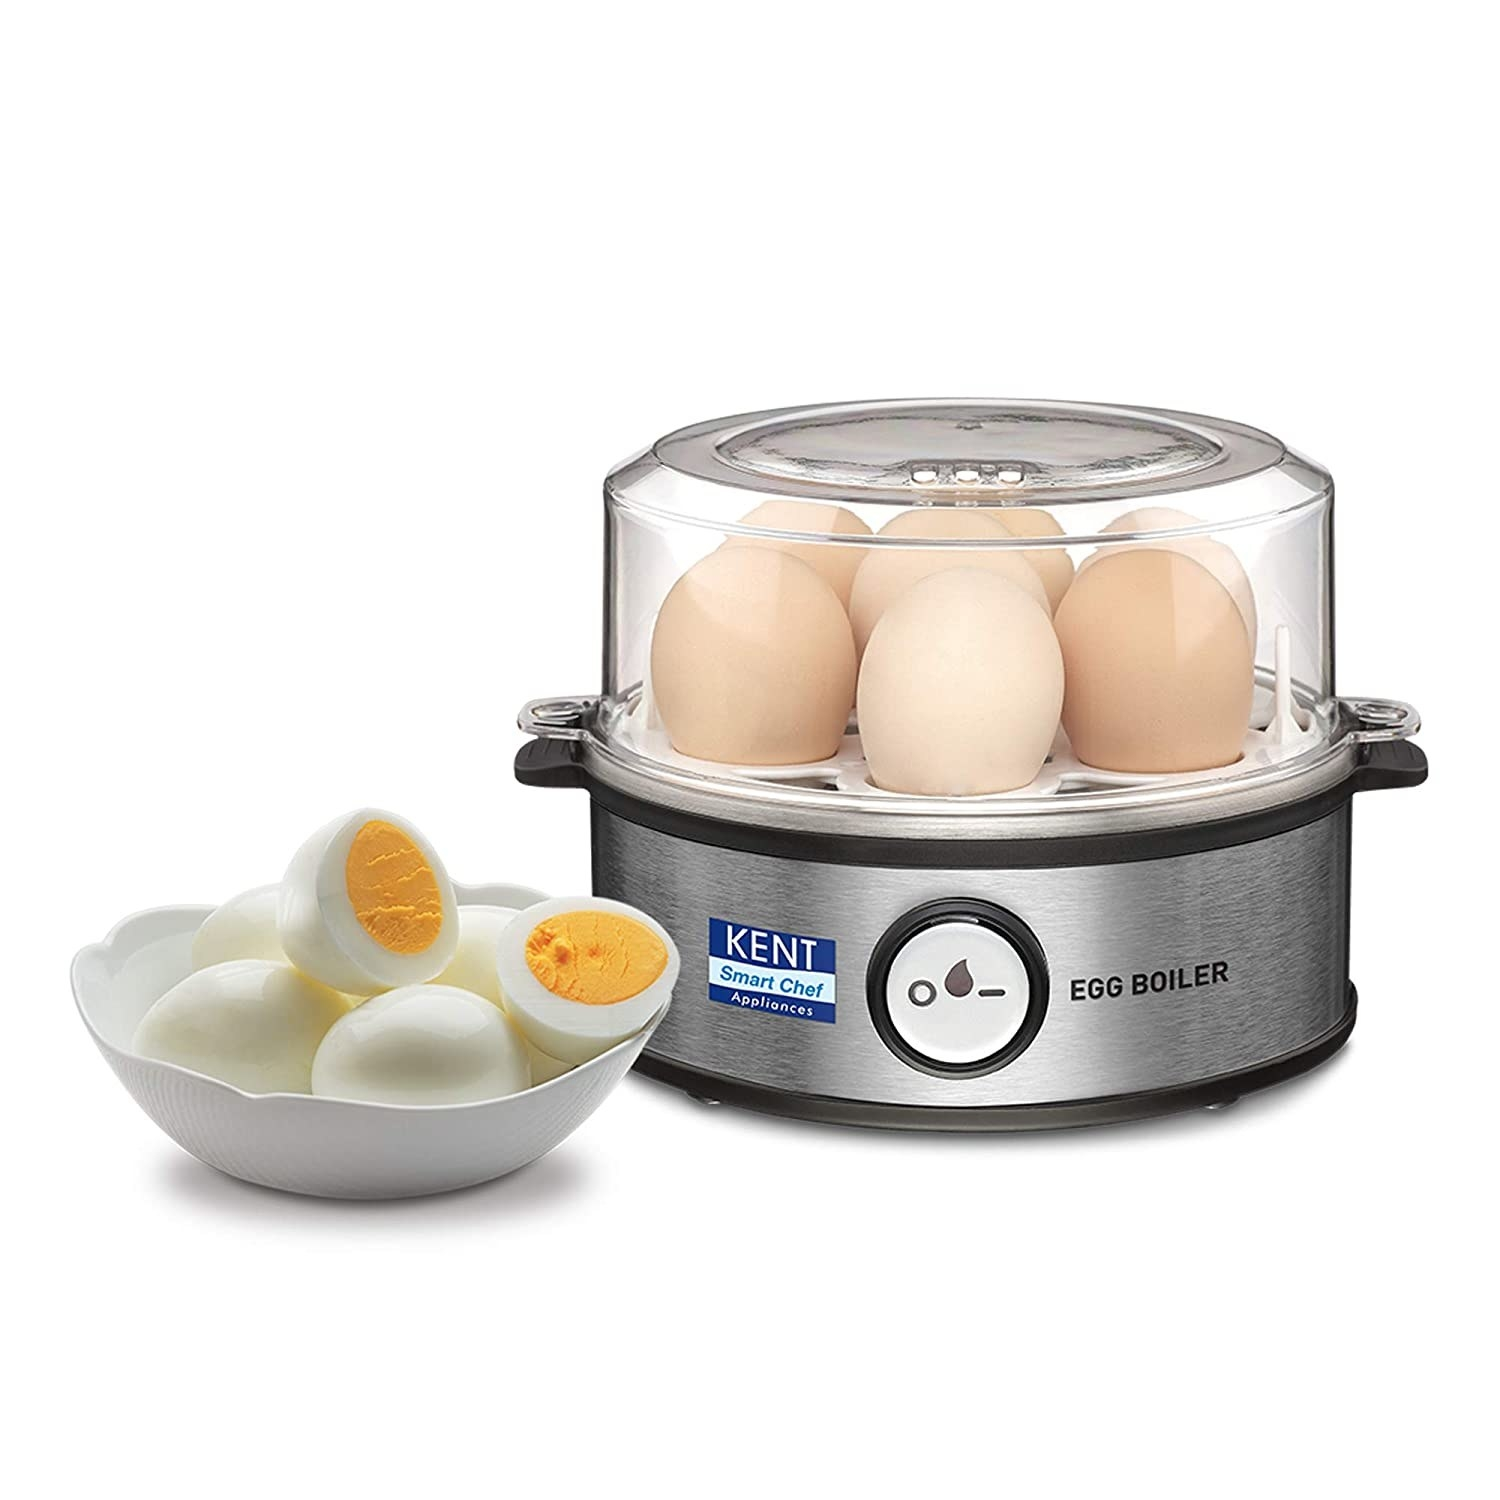 An egg boiler with eggs on the side